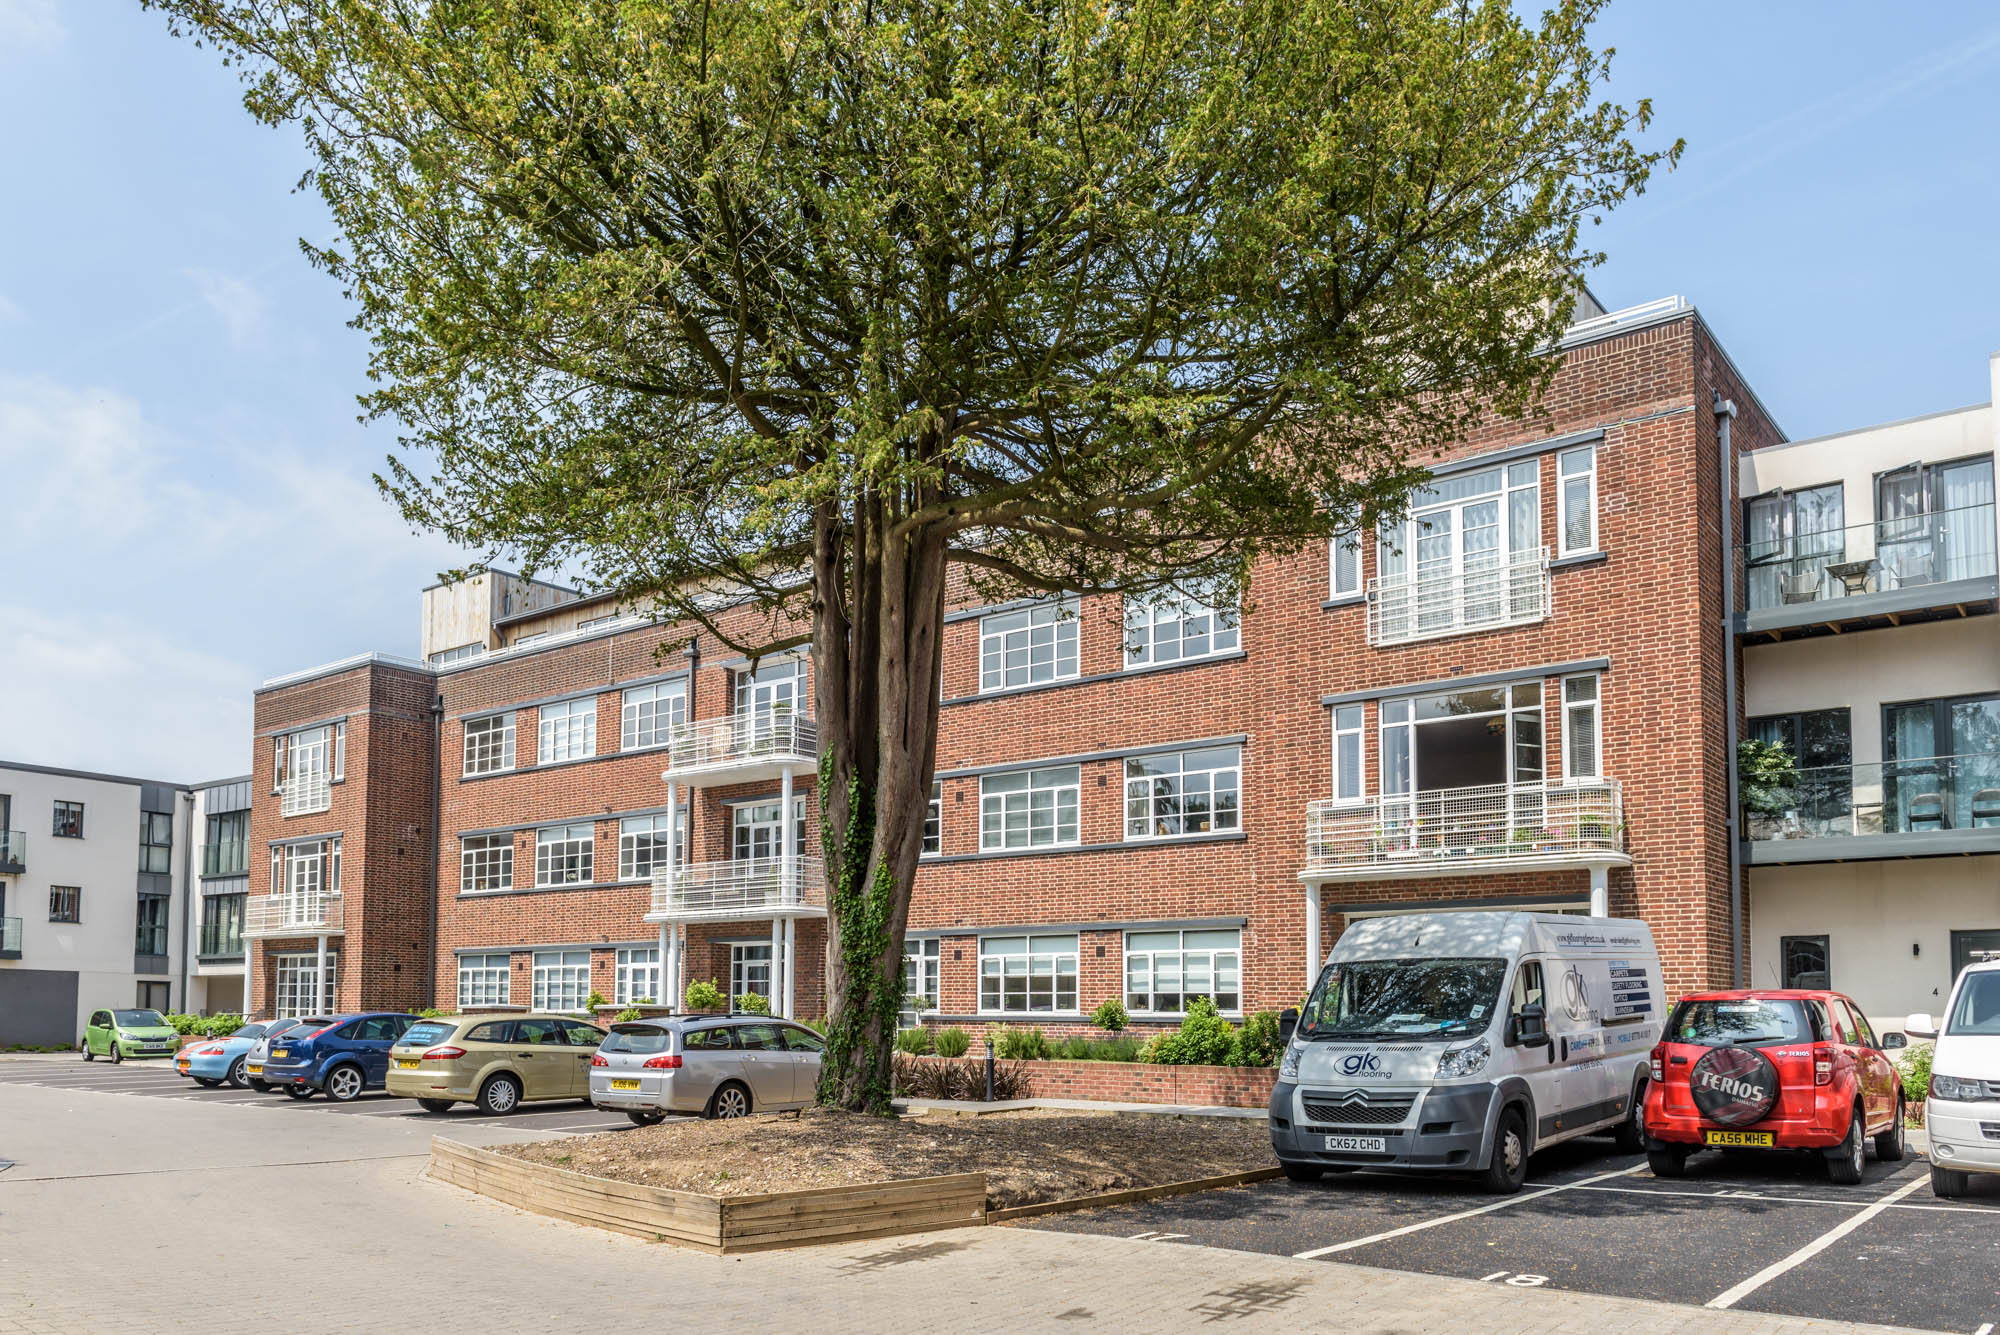 A photo of the exterior of a hospital converted to apartments in cardiff